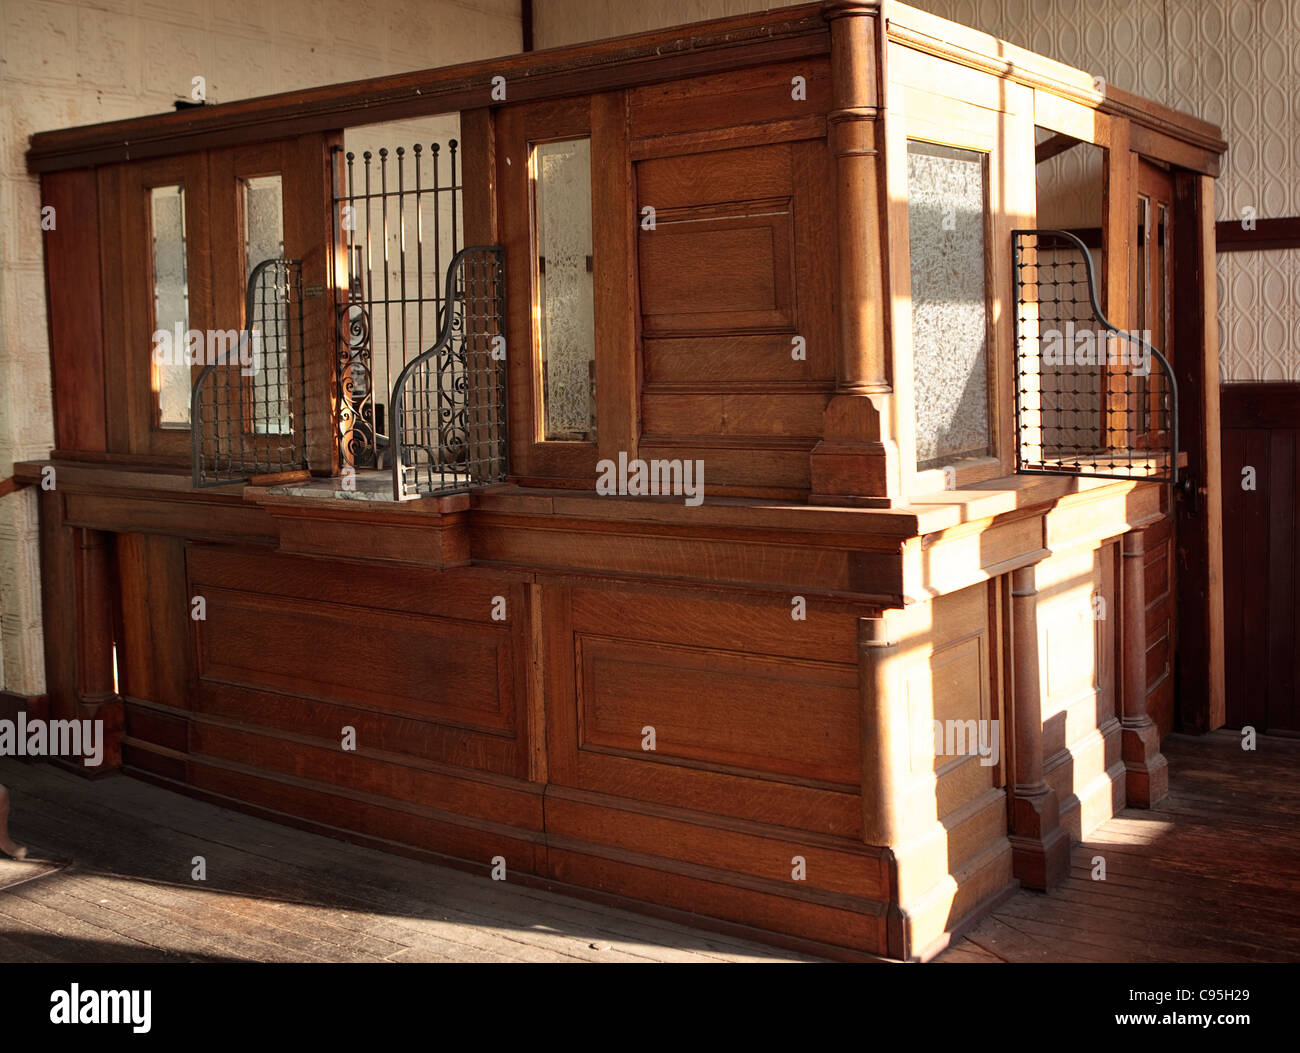 Image of the interior of the bank in Molson, Washington. - Stock Image